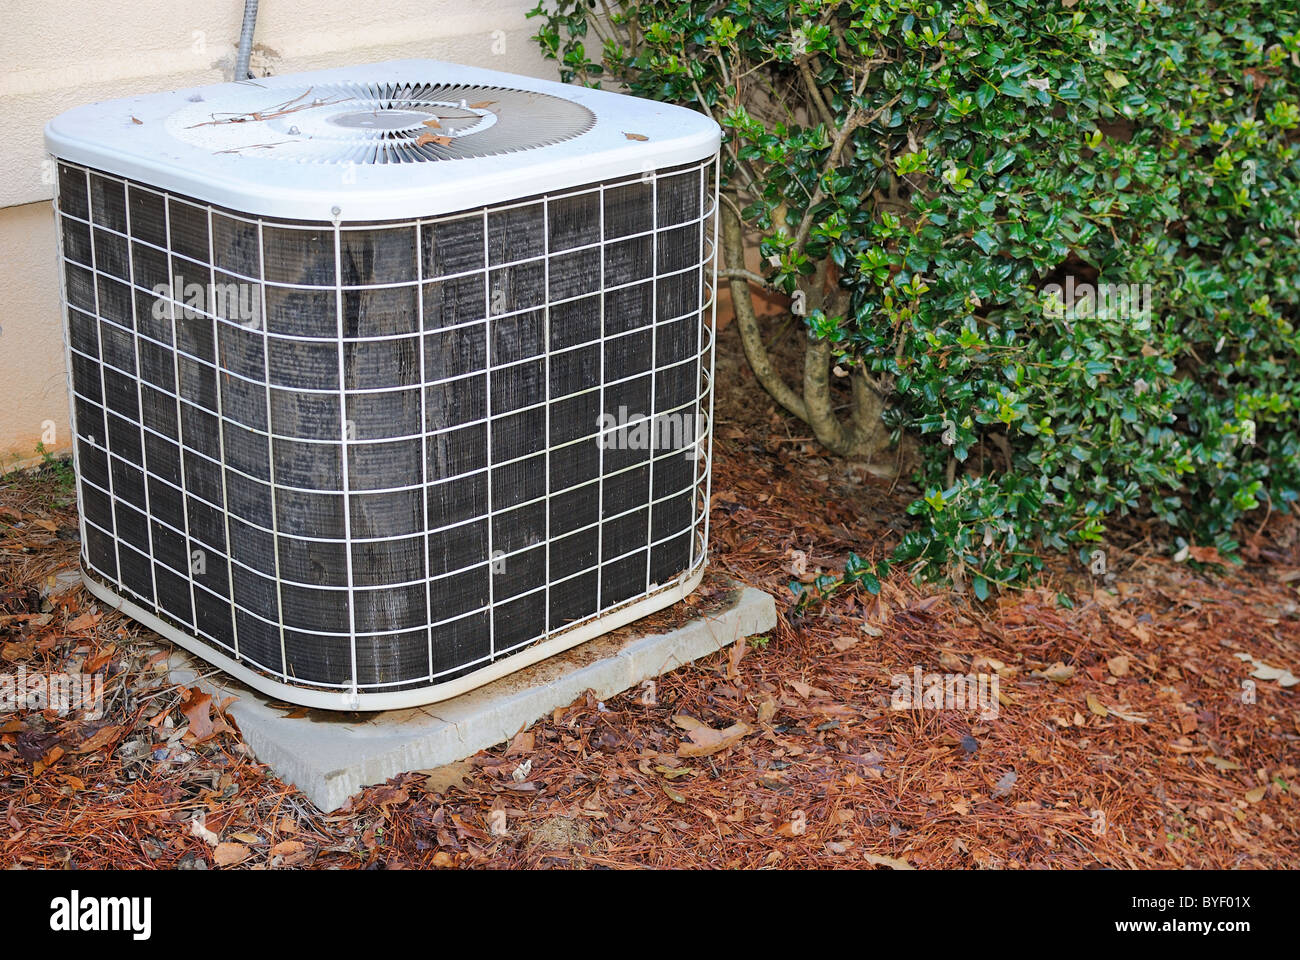 Residential air condition unit in mulch near a home. - Stock Image